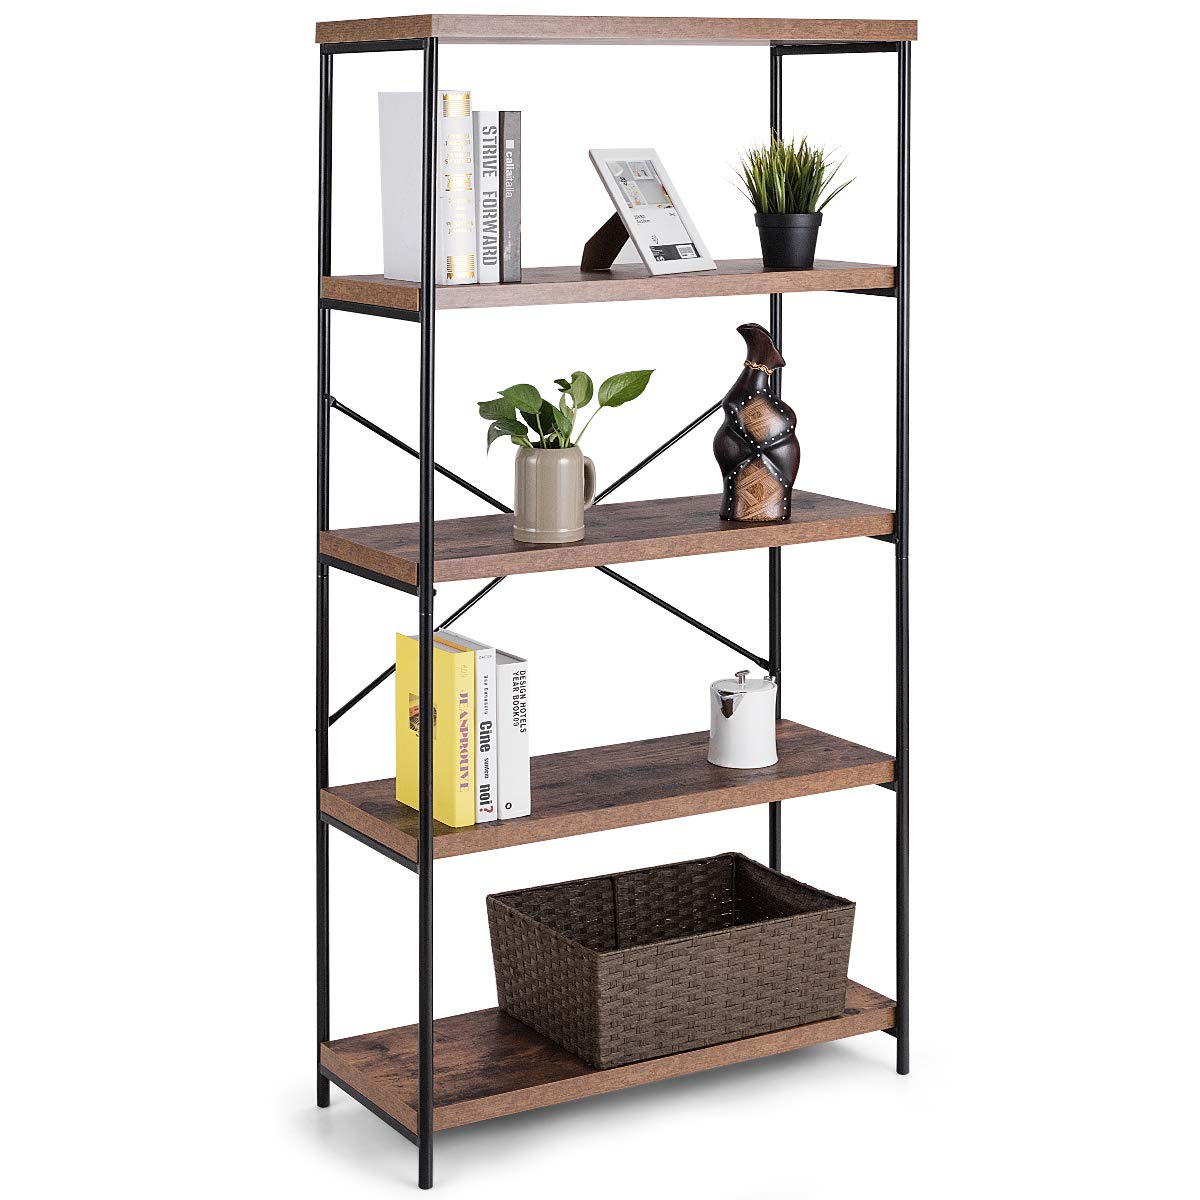 Tangkula 4-Tier Bookcase, Multipurpose Rustic Industrial Bookshelf, Décor Accent for Home, Office, Living Room, Bedroom, Wood Shelves w/Metal X-Shaped Frame, Display Bookshelf (Brown) by Tangkula